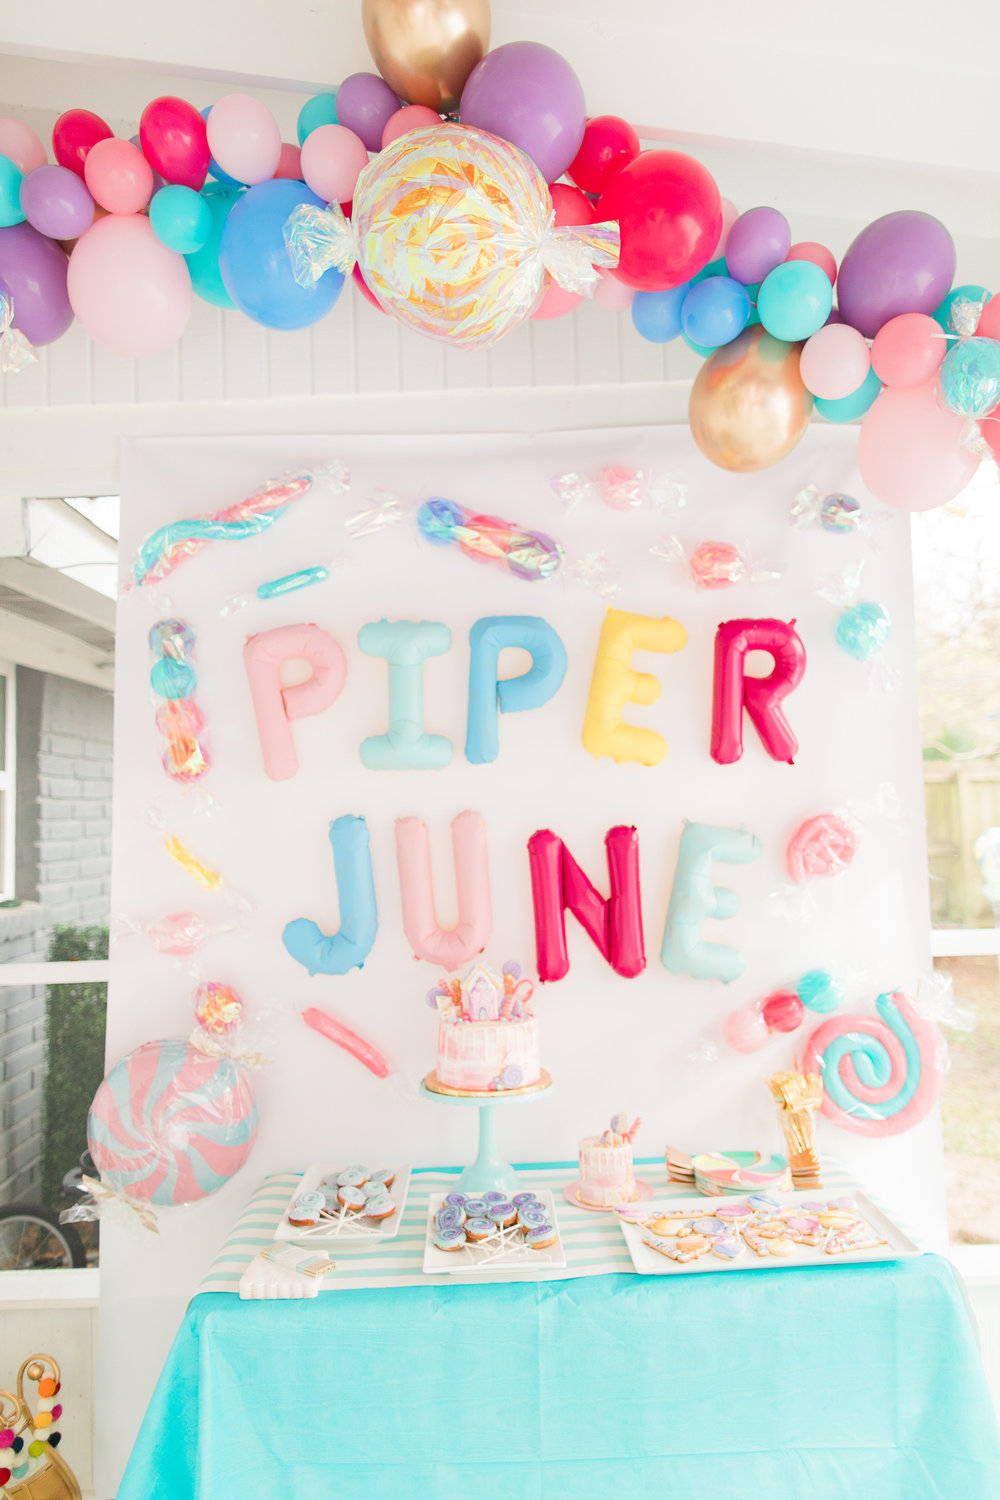 PIPERS CANDY THEMED FIRST BIRTHDAY PARTY Cake Confetti